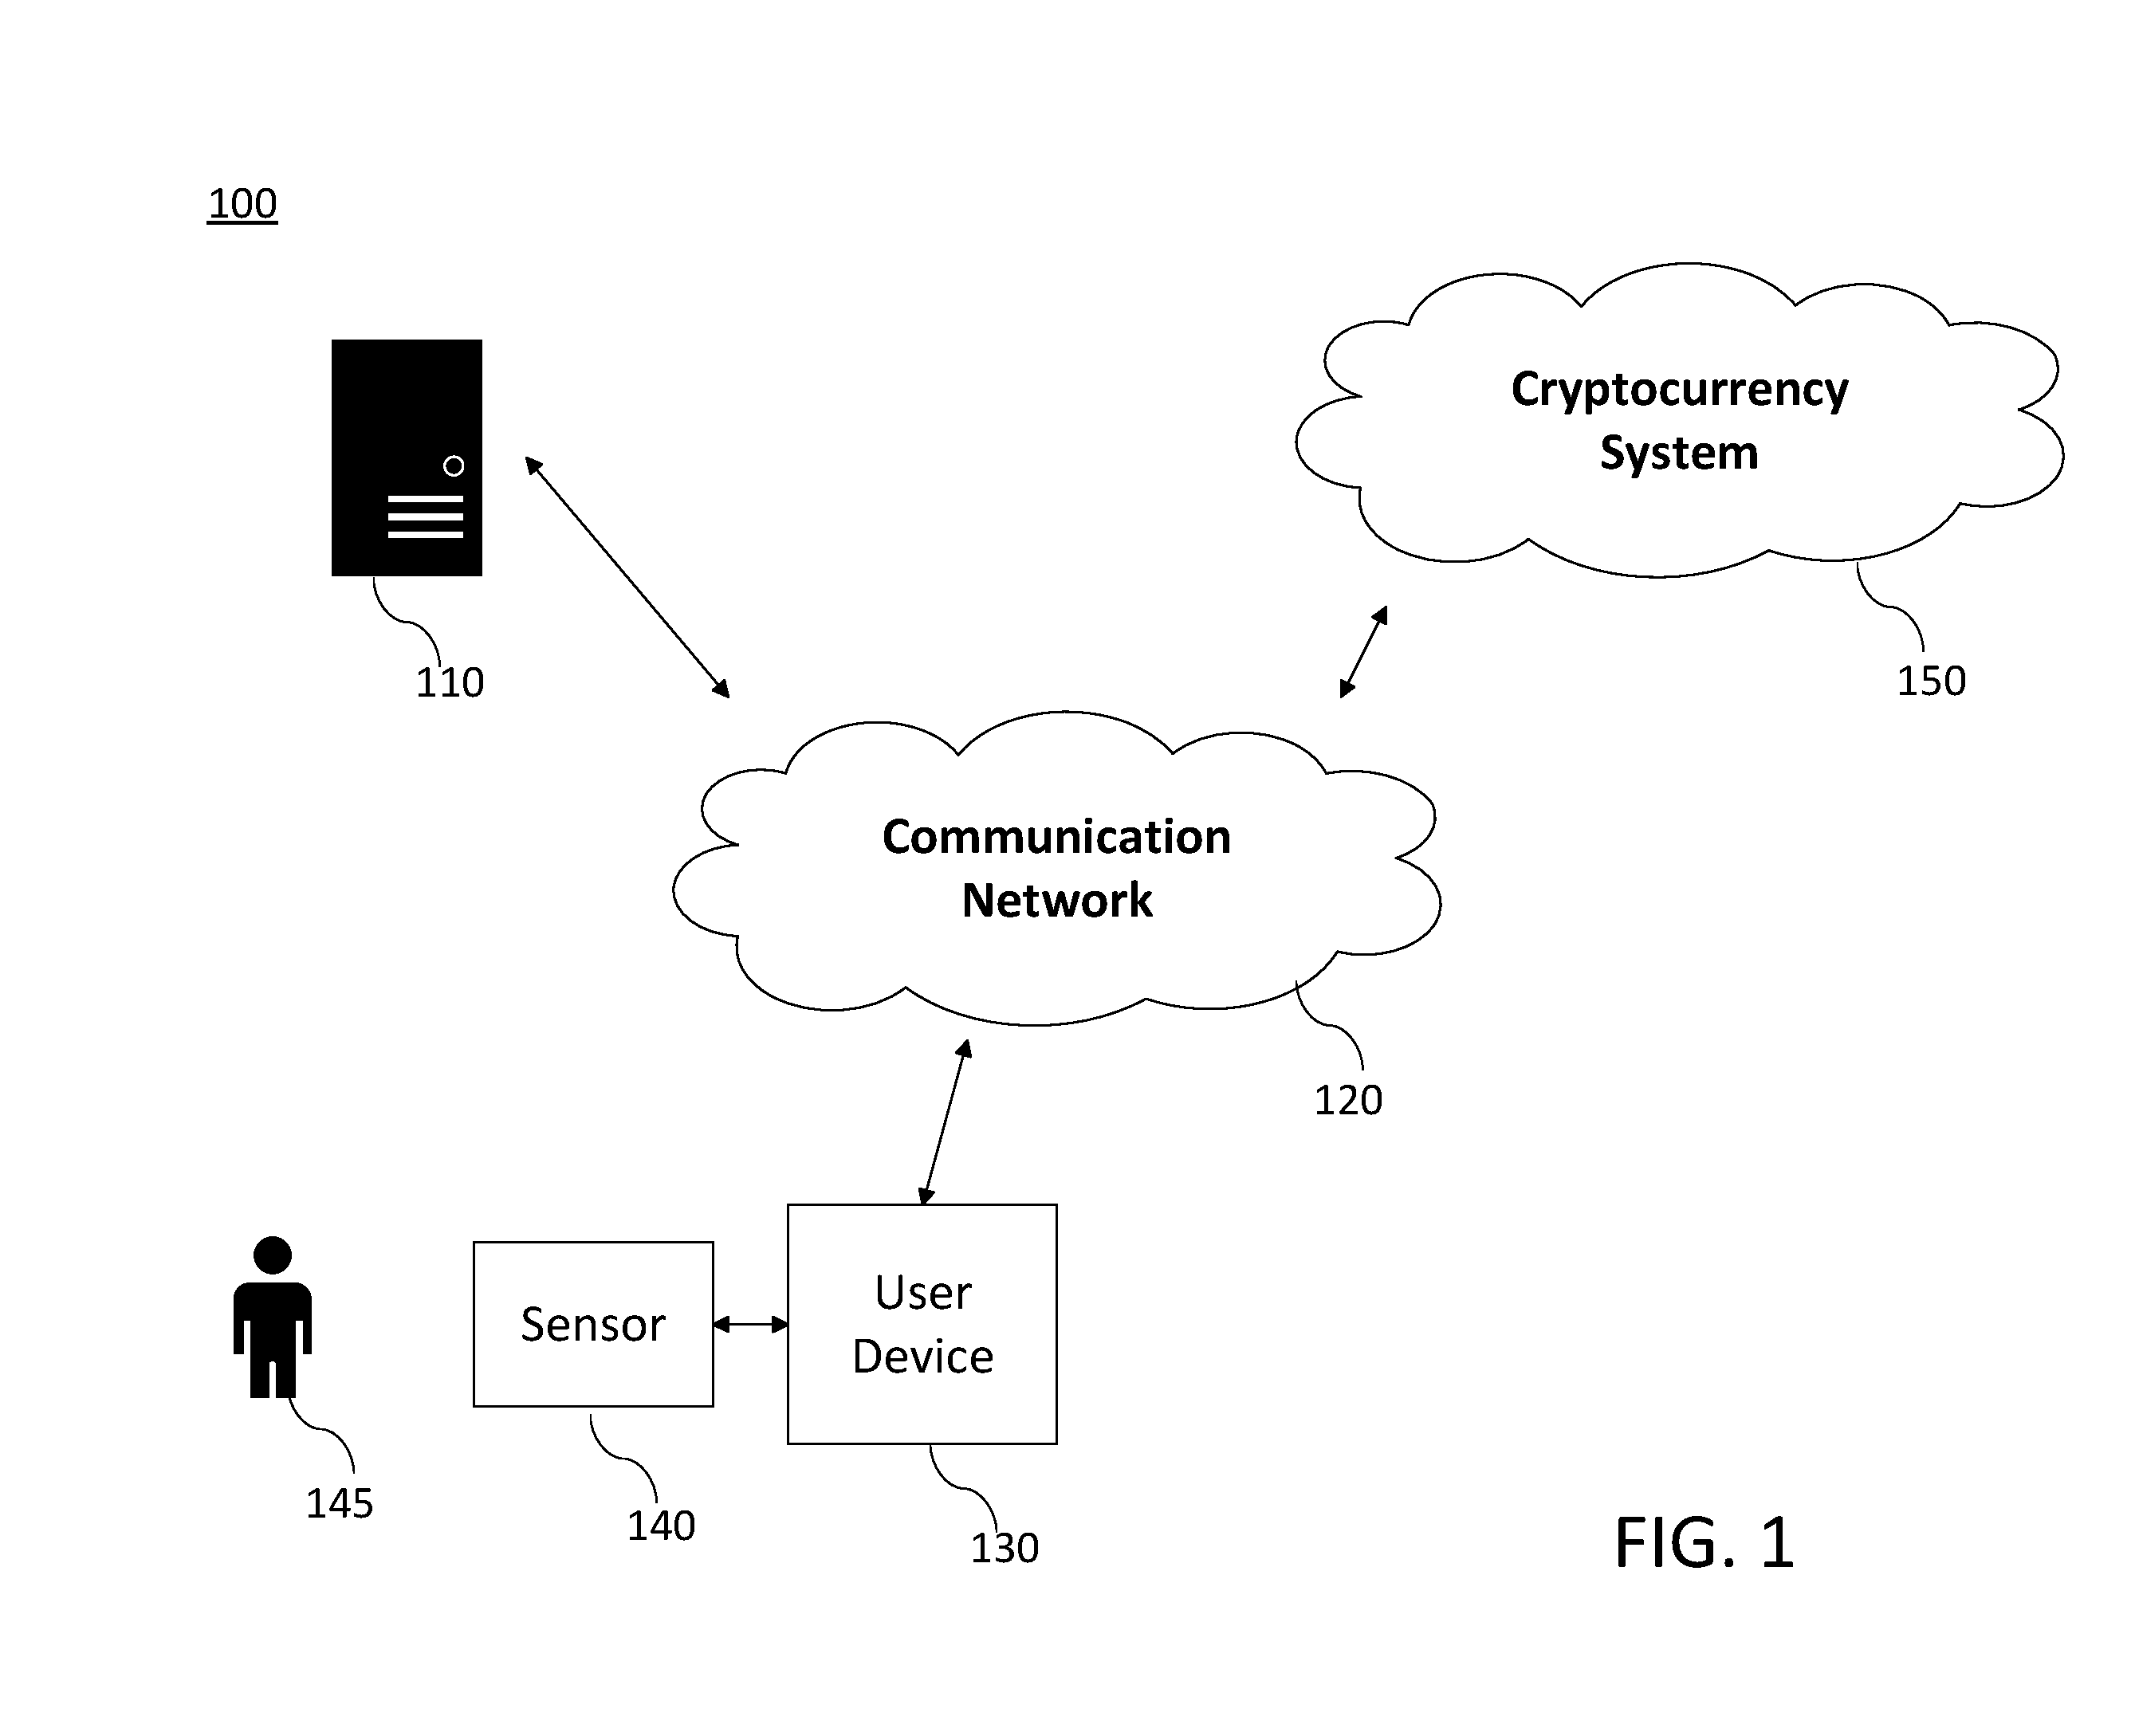 WO2020060606 - CRYPTOCURRENCY SYSTEM USING BODY ACTIVITY DATA